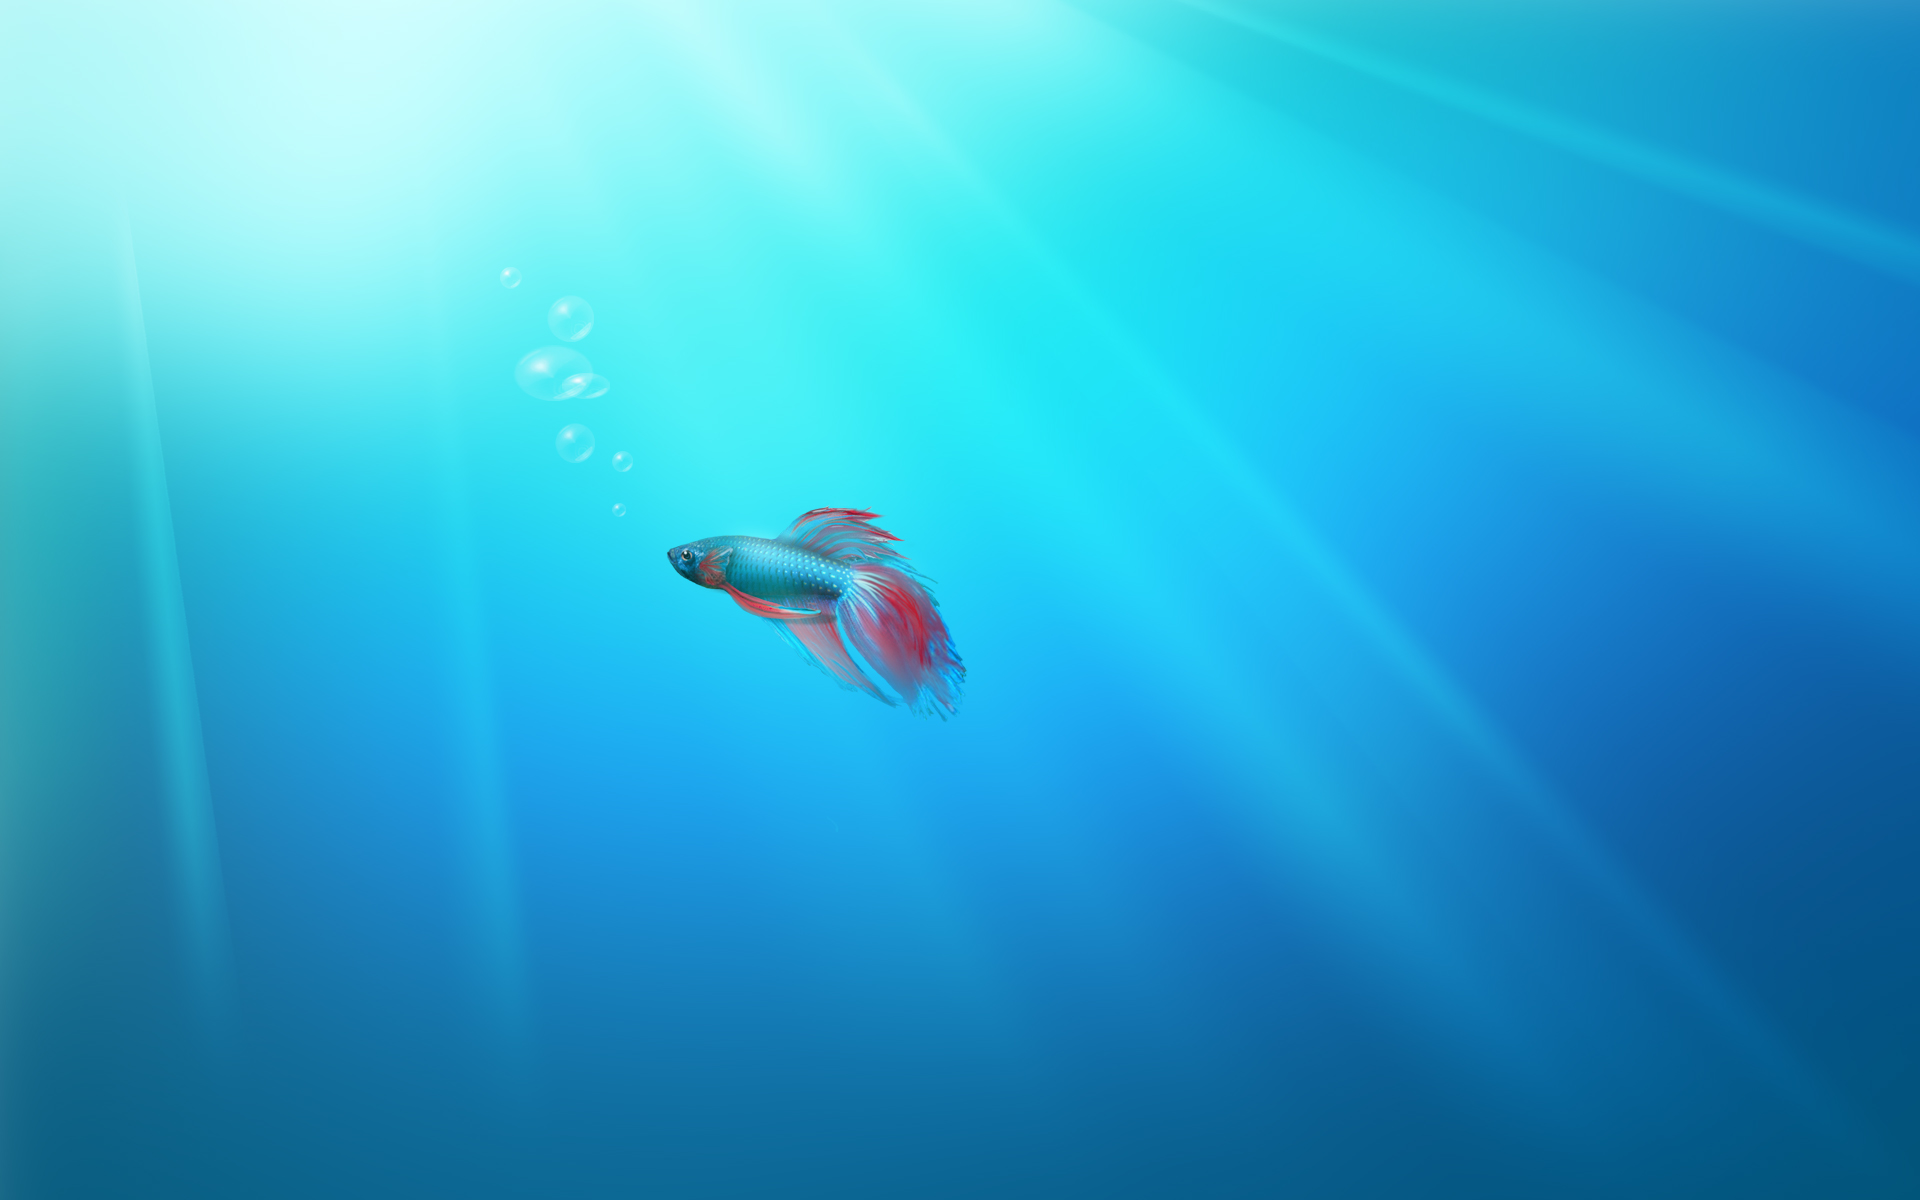 Windows 7 Beta Fish wallpaper   160940 1920x1200